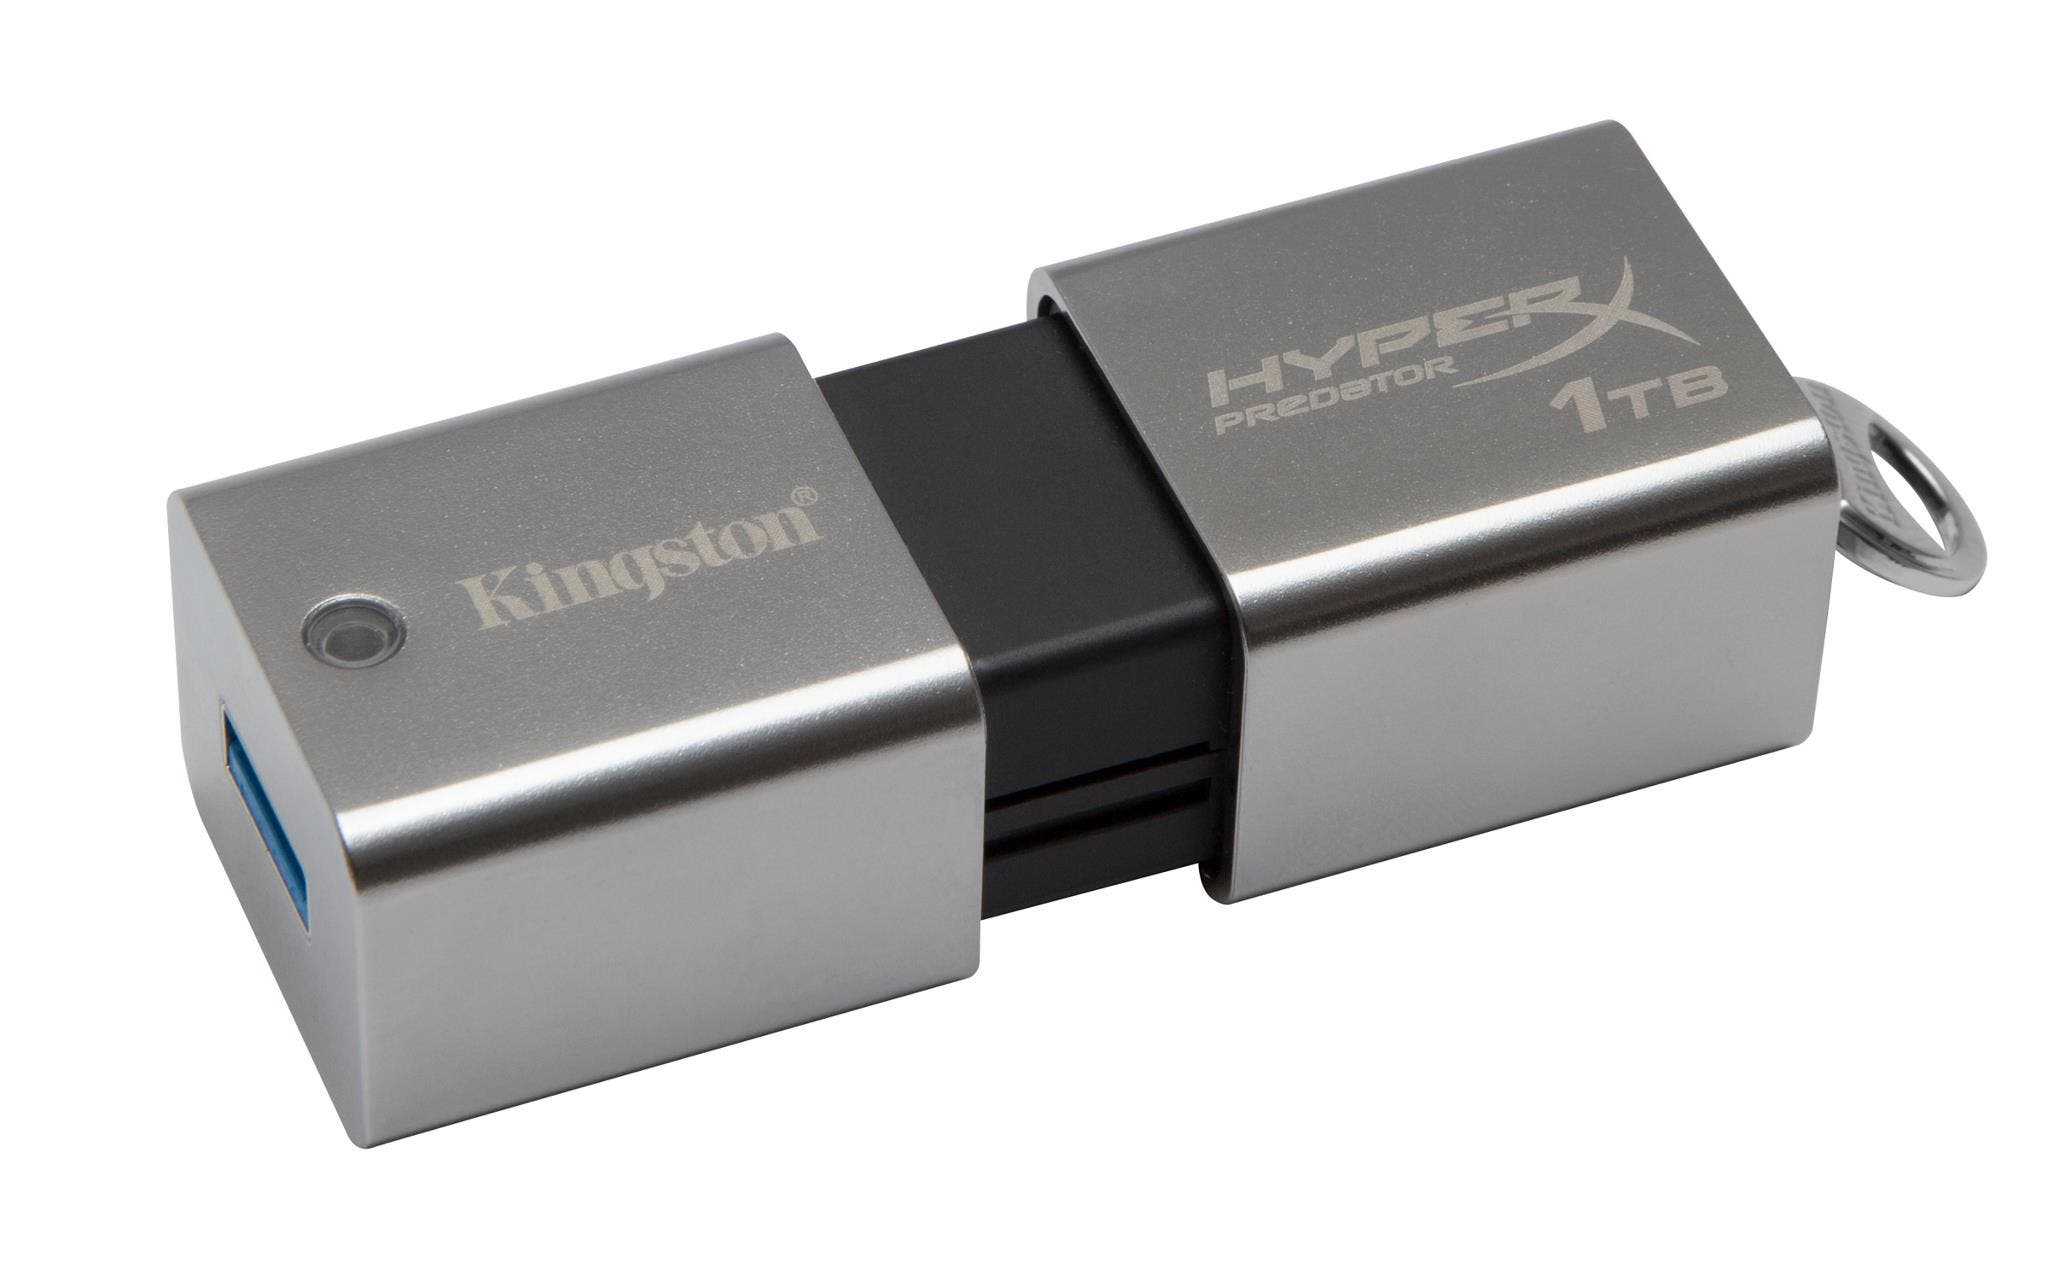 kingston datatraveler hyperx predator 3.0